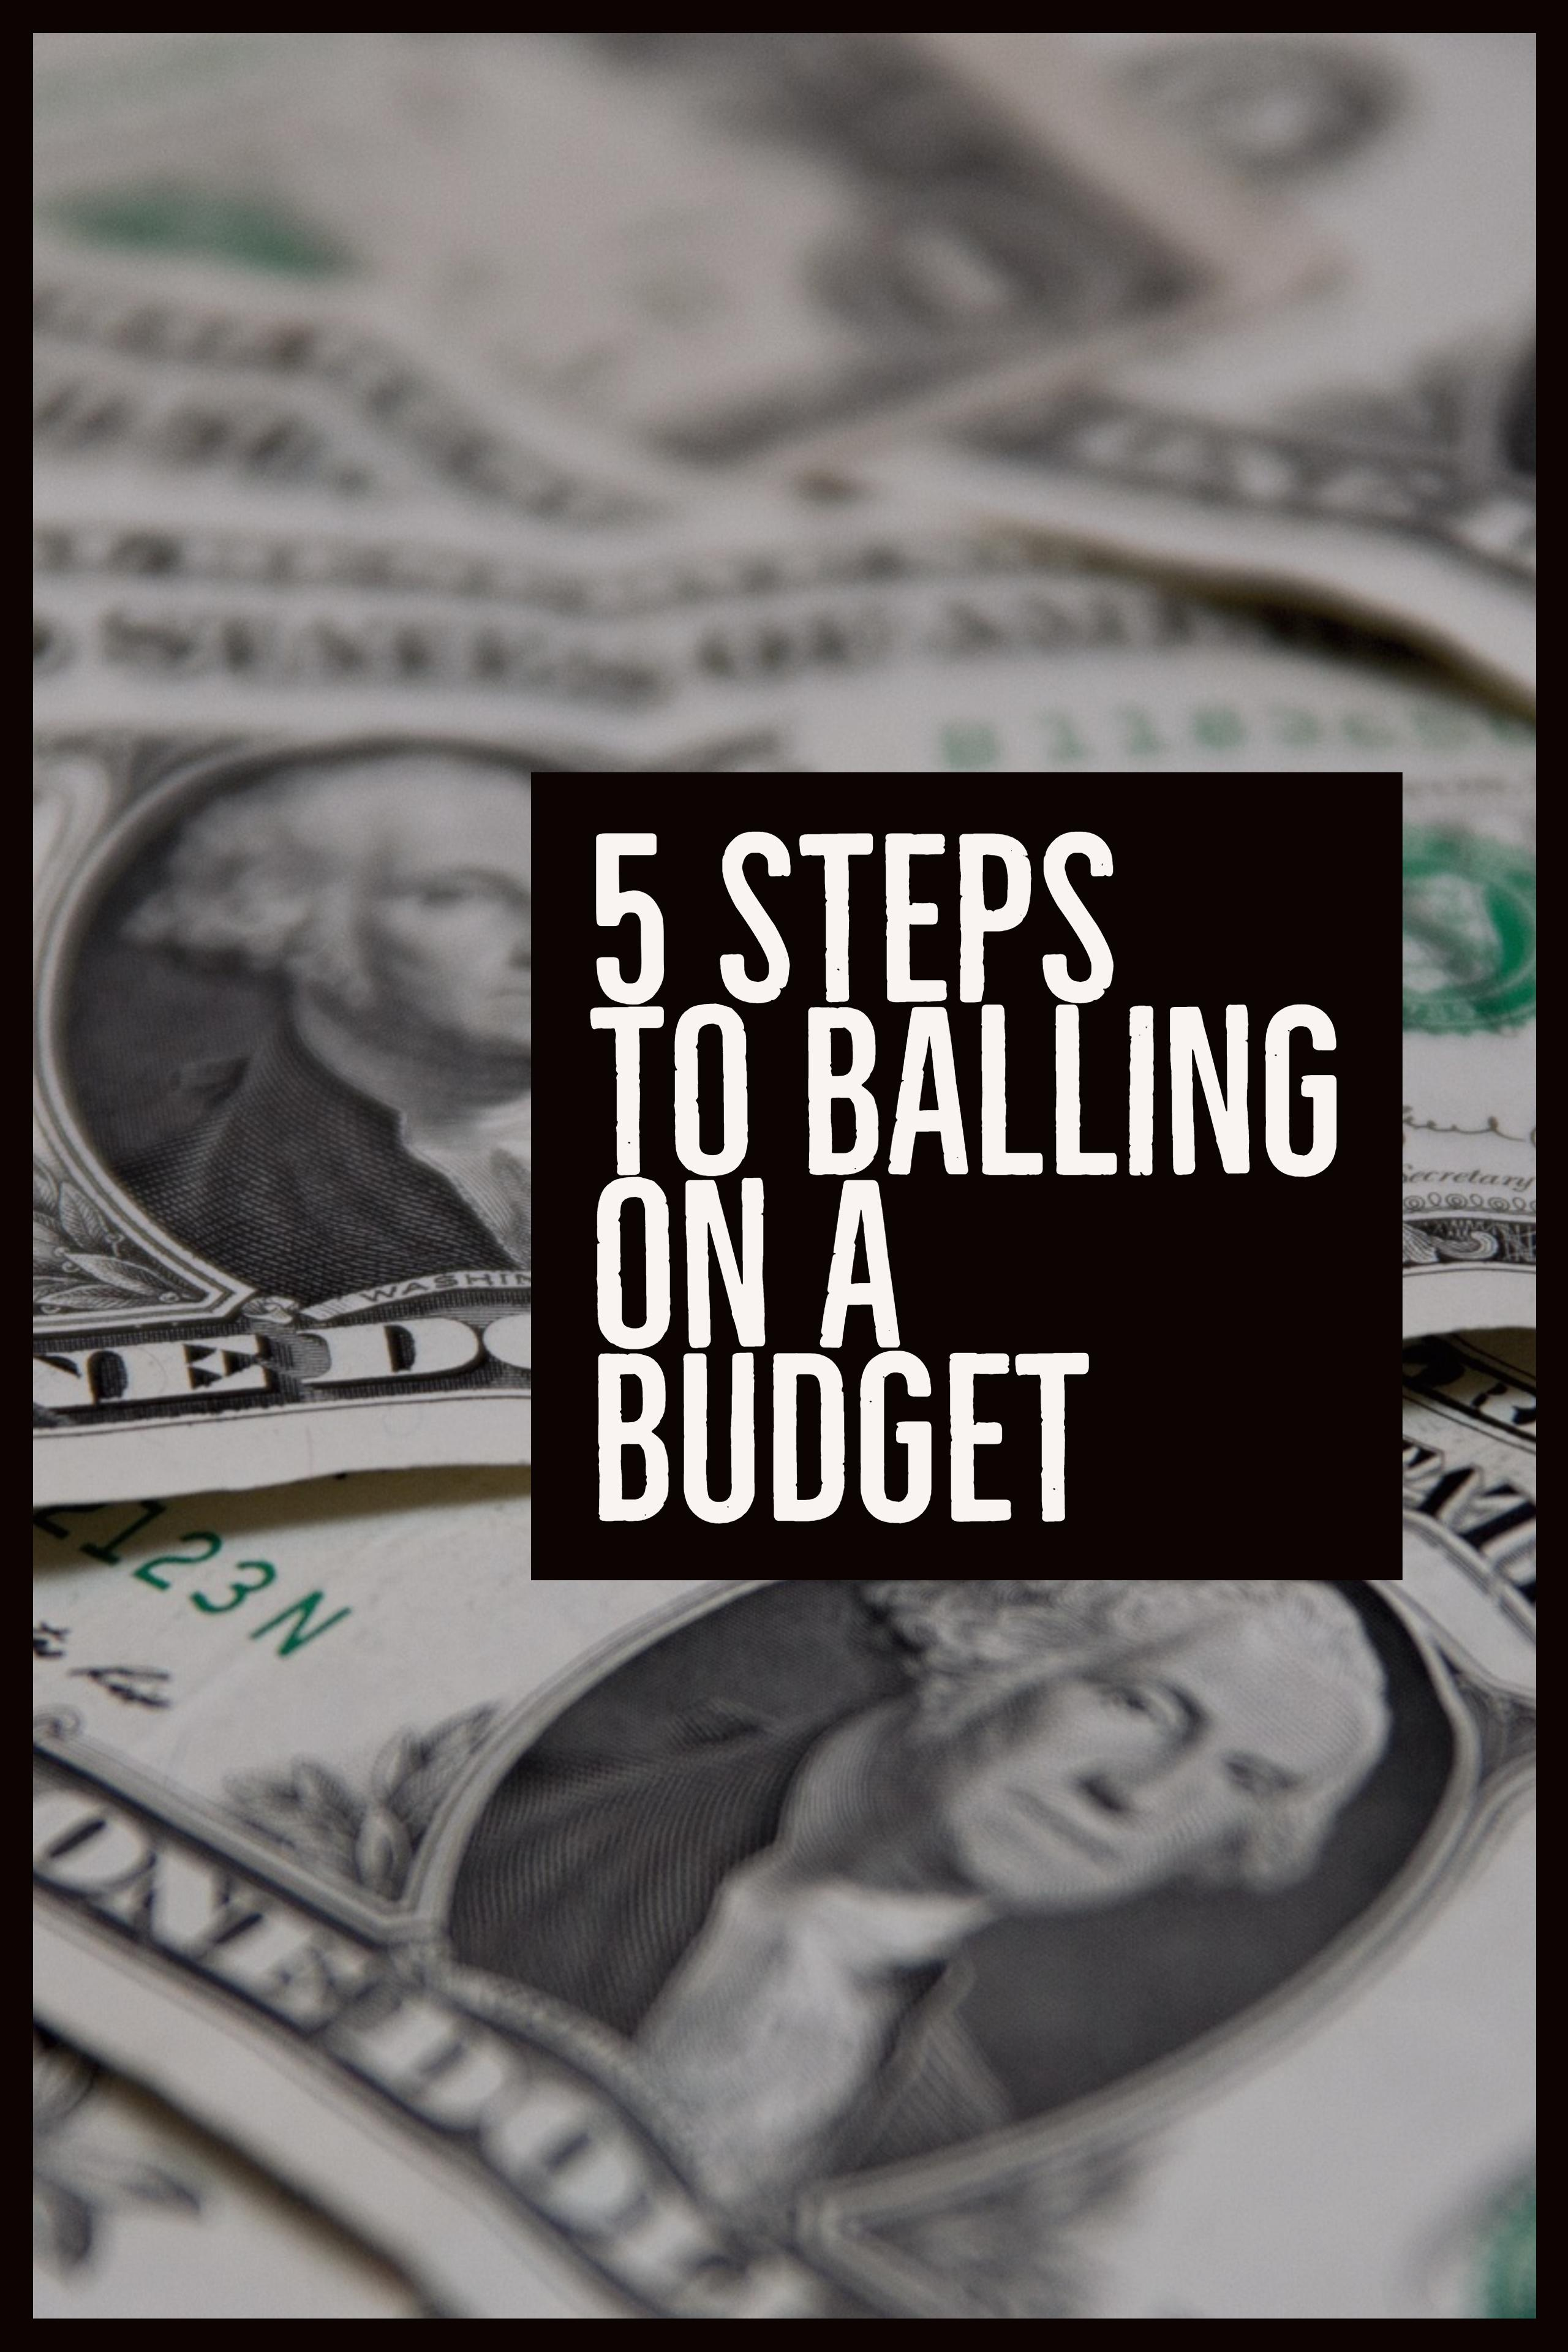 Read this post and more instantly by signing up for the Wealth Noir Preview, and get a chance to win an Amazon Gift Card. Sign up at wealthnoir.com.  My budget allows me to ball on the things I want without worry. It's easy and ensures I stay on track to build wealth. Learn the 5 steps to start balling. #wealthnoir #balling #havingthangs